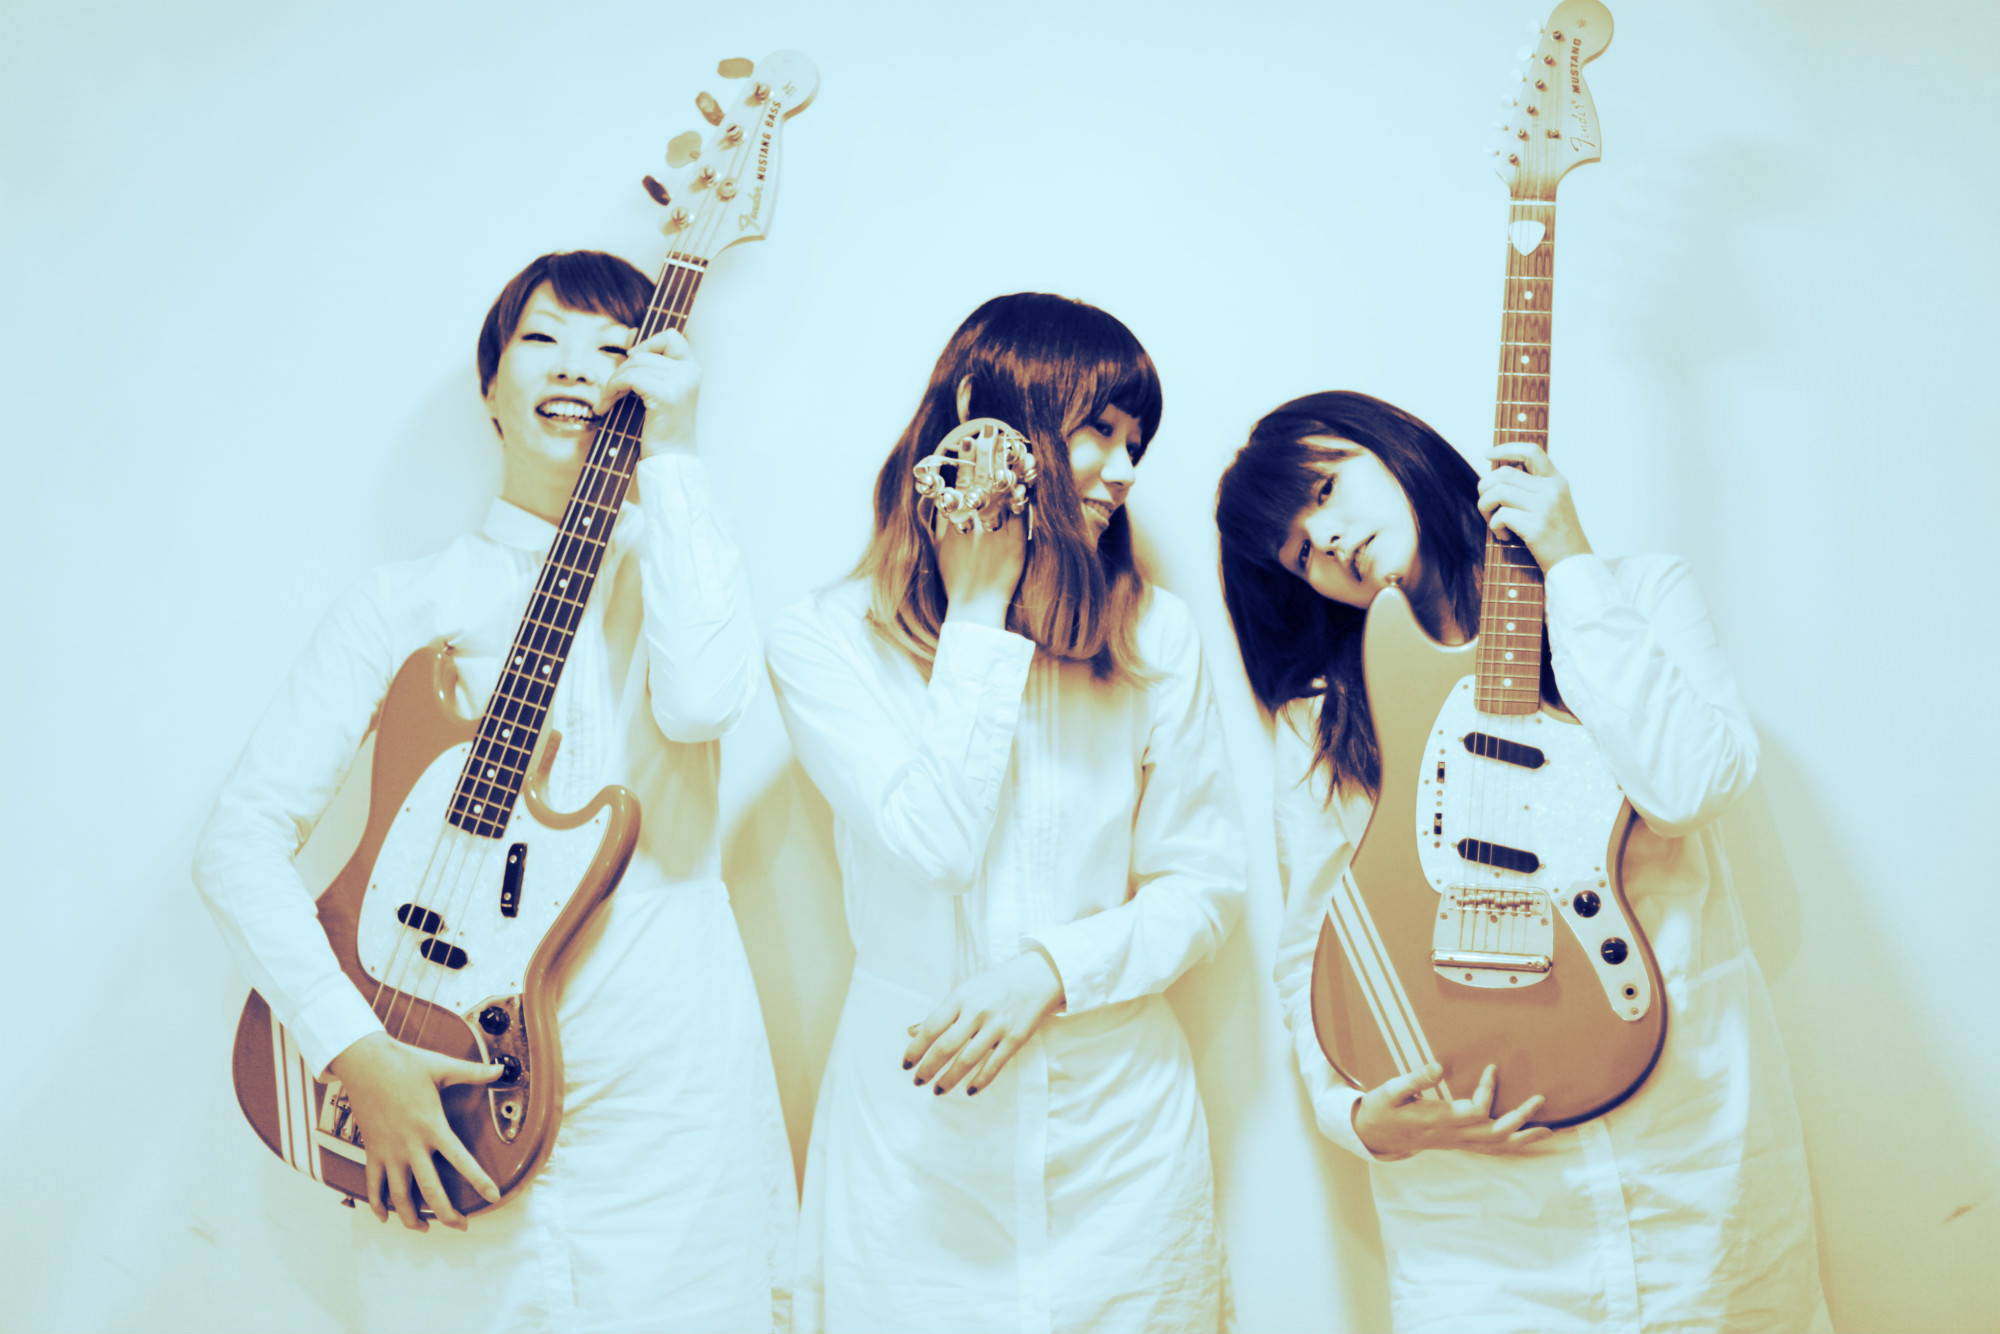 ミエットワン・オフィシャルサイト I ♥ D.I.Y. I need indie pop! miette-one official web site